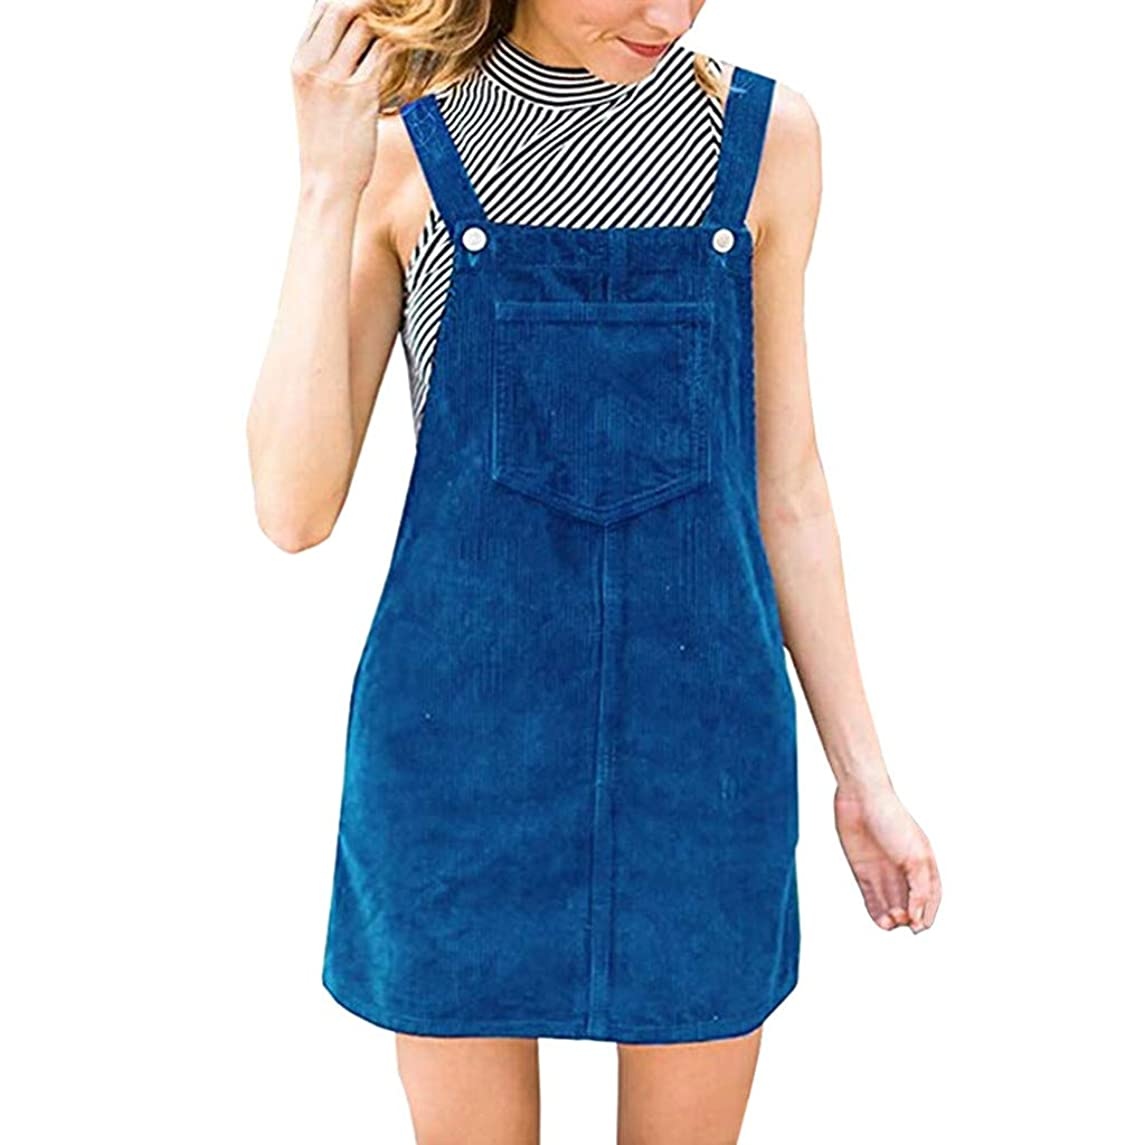 Sunhusing Women's Solid Color Corduroy Sleeveless Suspender Button Buckle Pocket Splicing A-Line Straight Dress